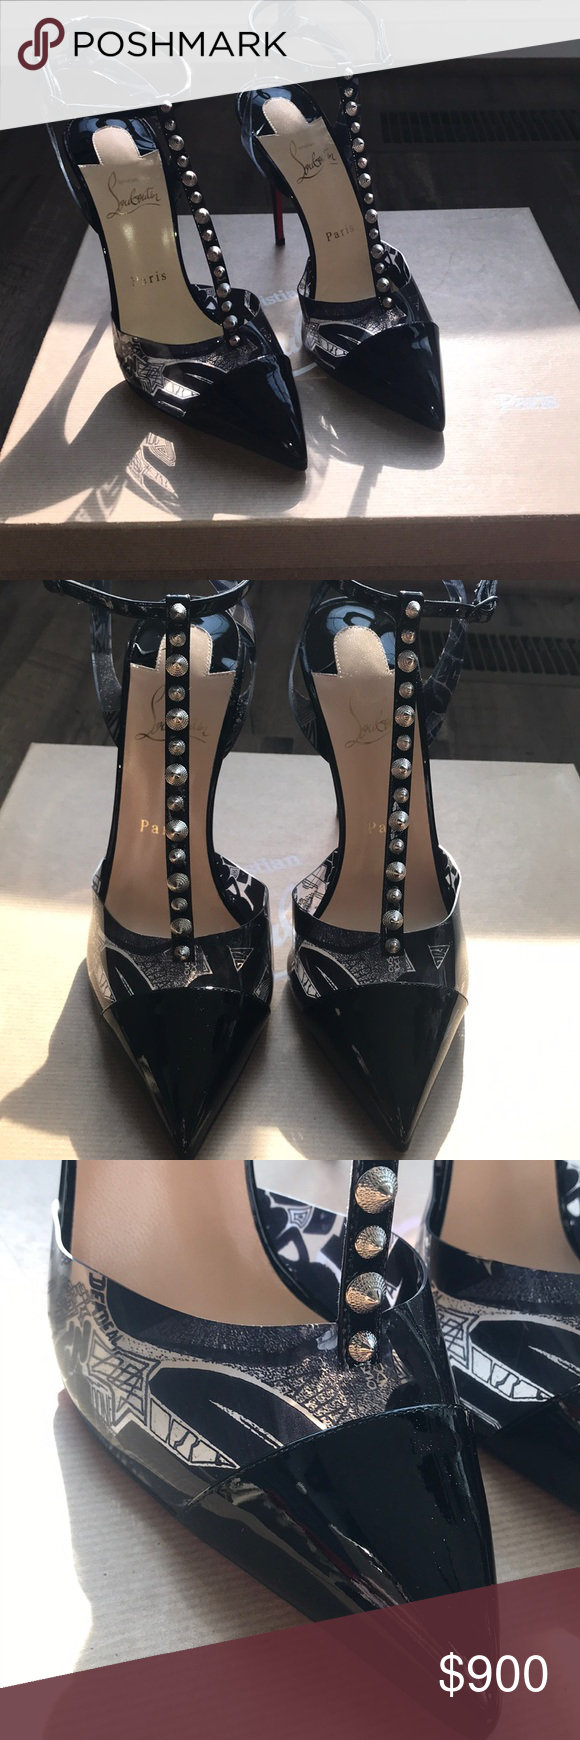 Christian Louboutin Nosy Spikes 100 Mm 39 A Pvc Slingback And Vamp Create A Modern Floating Effect For The Seductive Black Kidskin T Christian Louboutin Shoes Christian Louboutin Heels